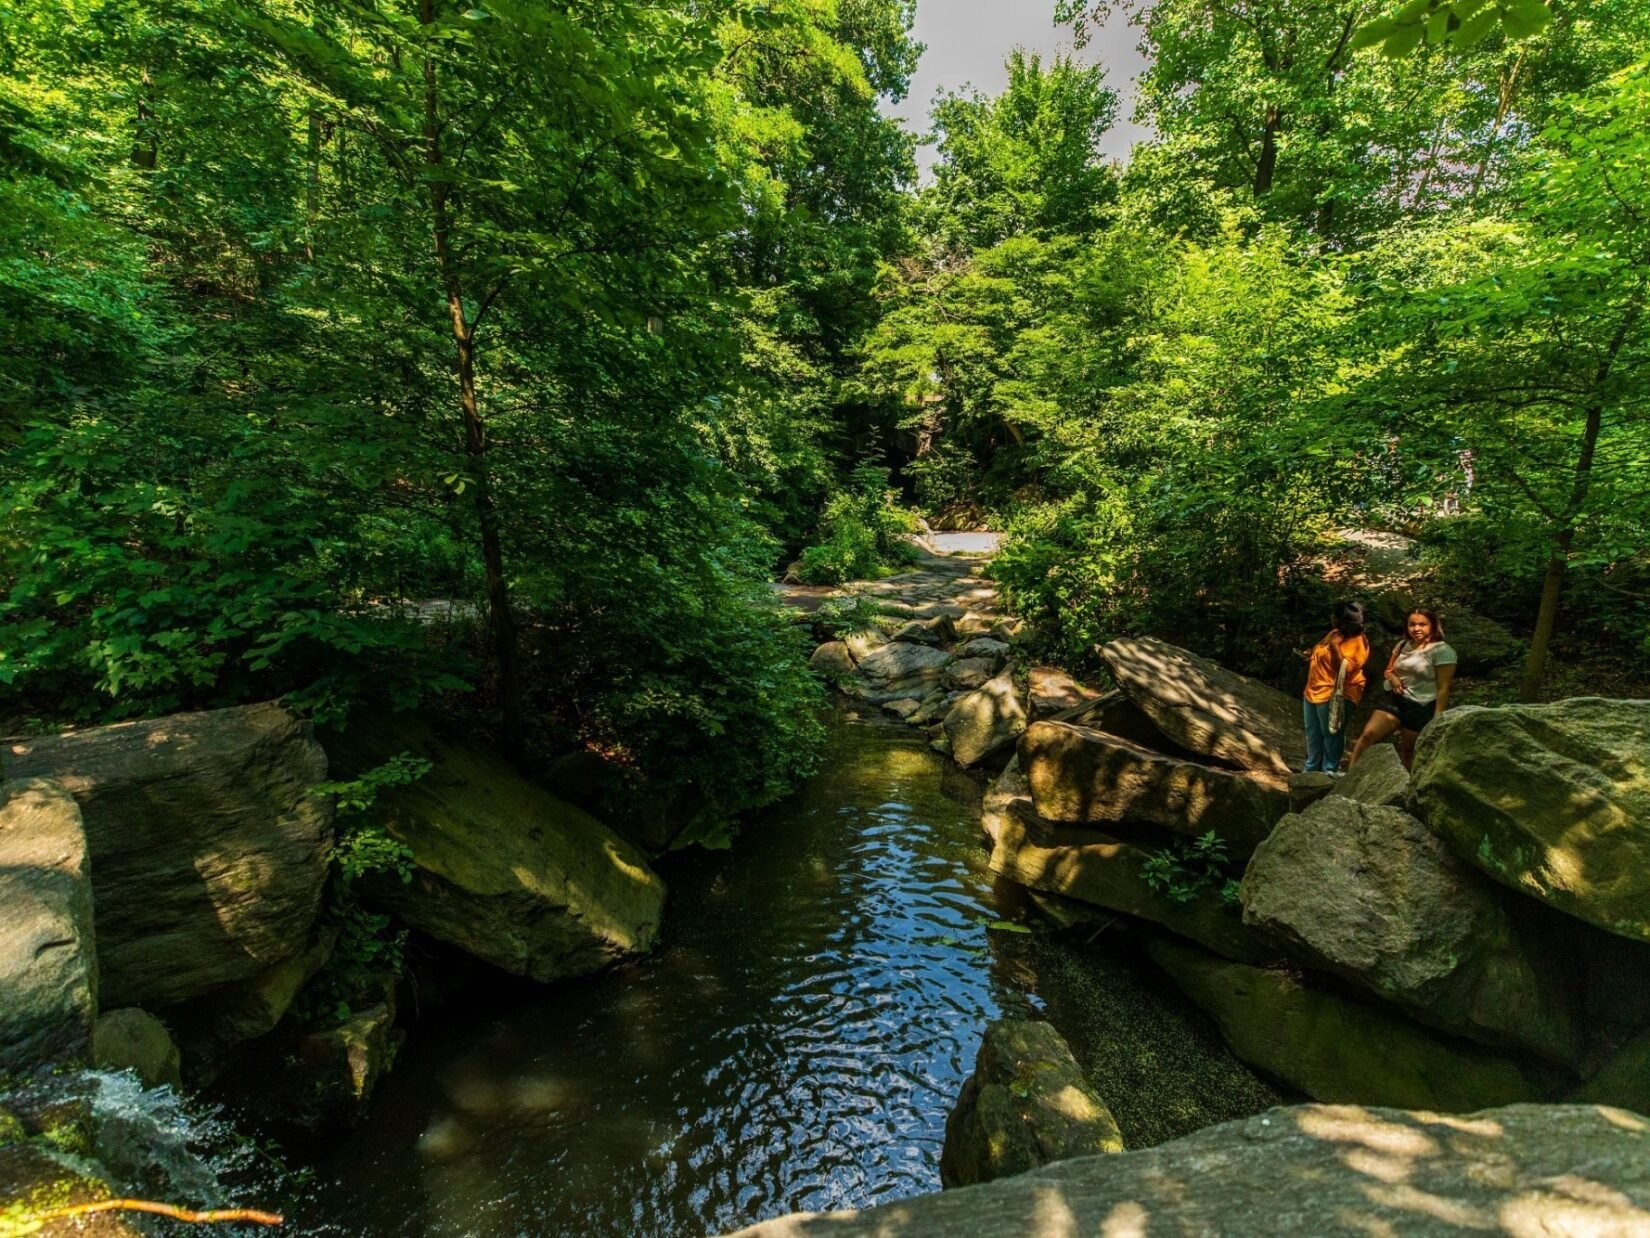 A pair of visitors stand on the shaded banks of the Ravine in a lush forest landscape.